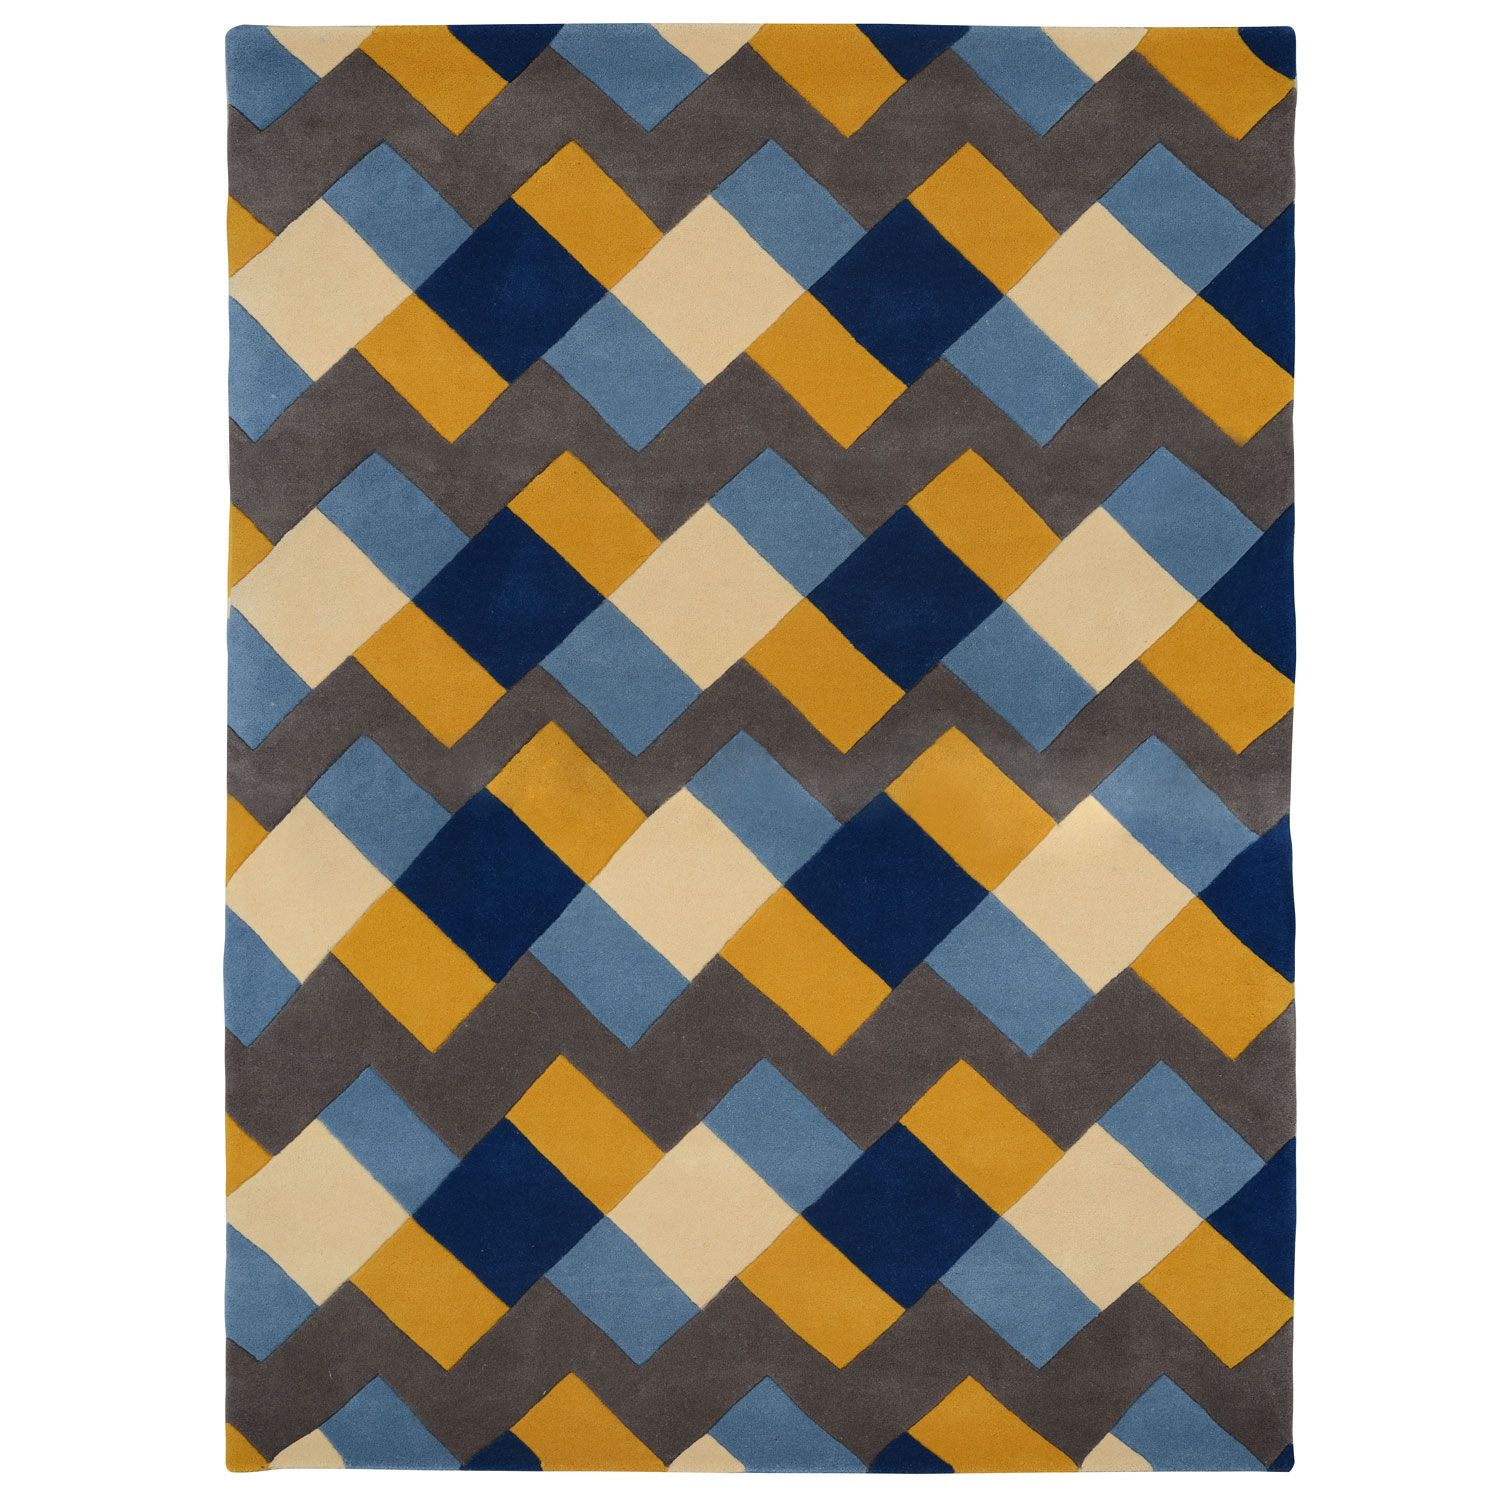 Weft Yellow And Blue Rug By Kangan Arora Patterned Rugs Rugs